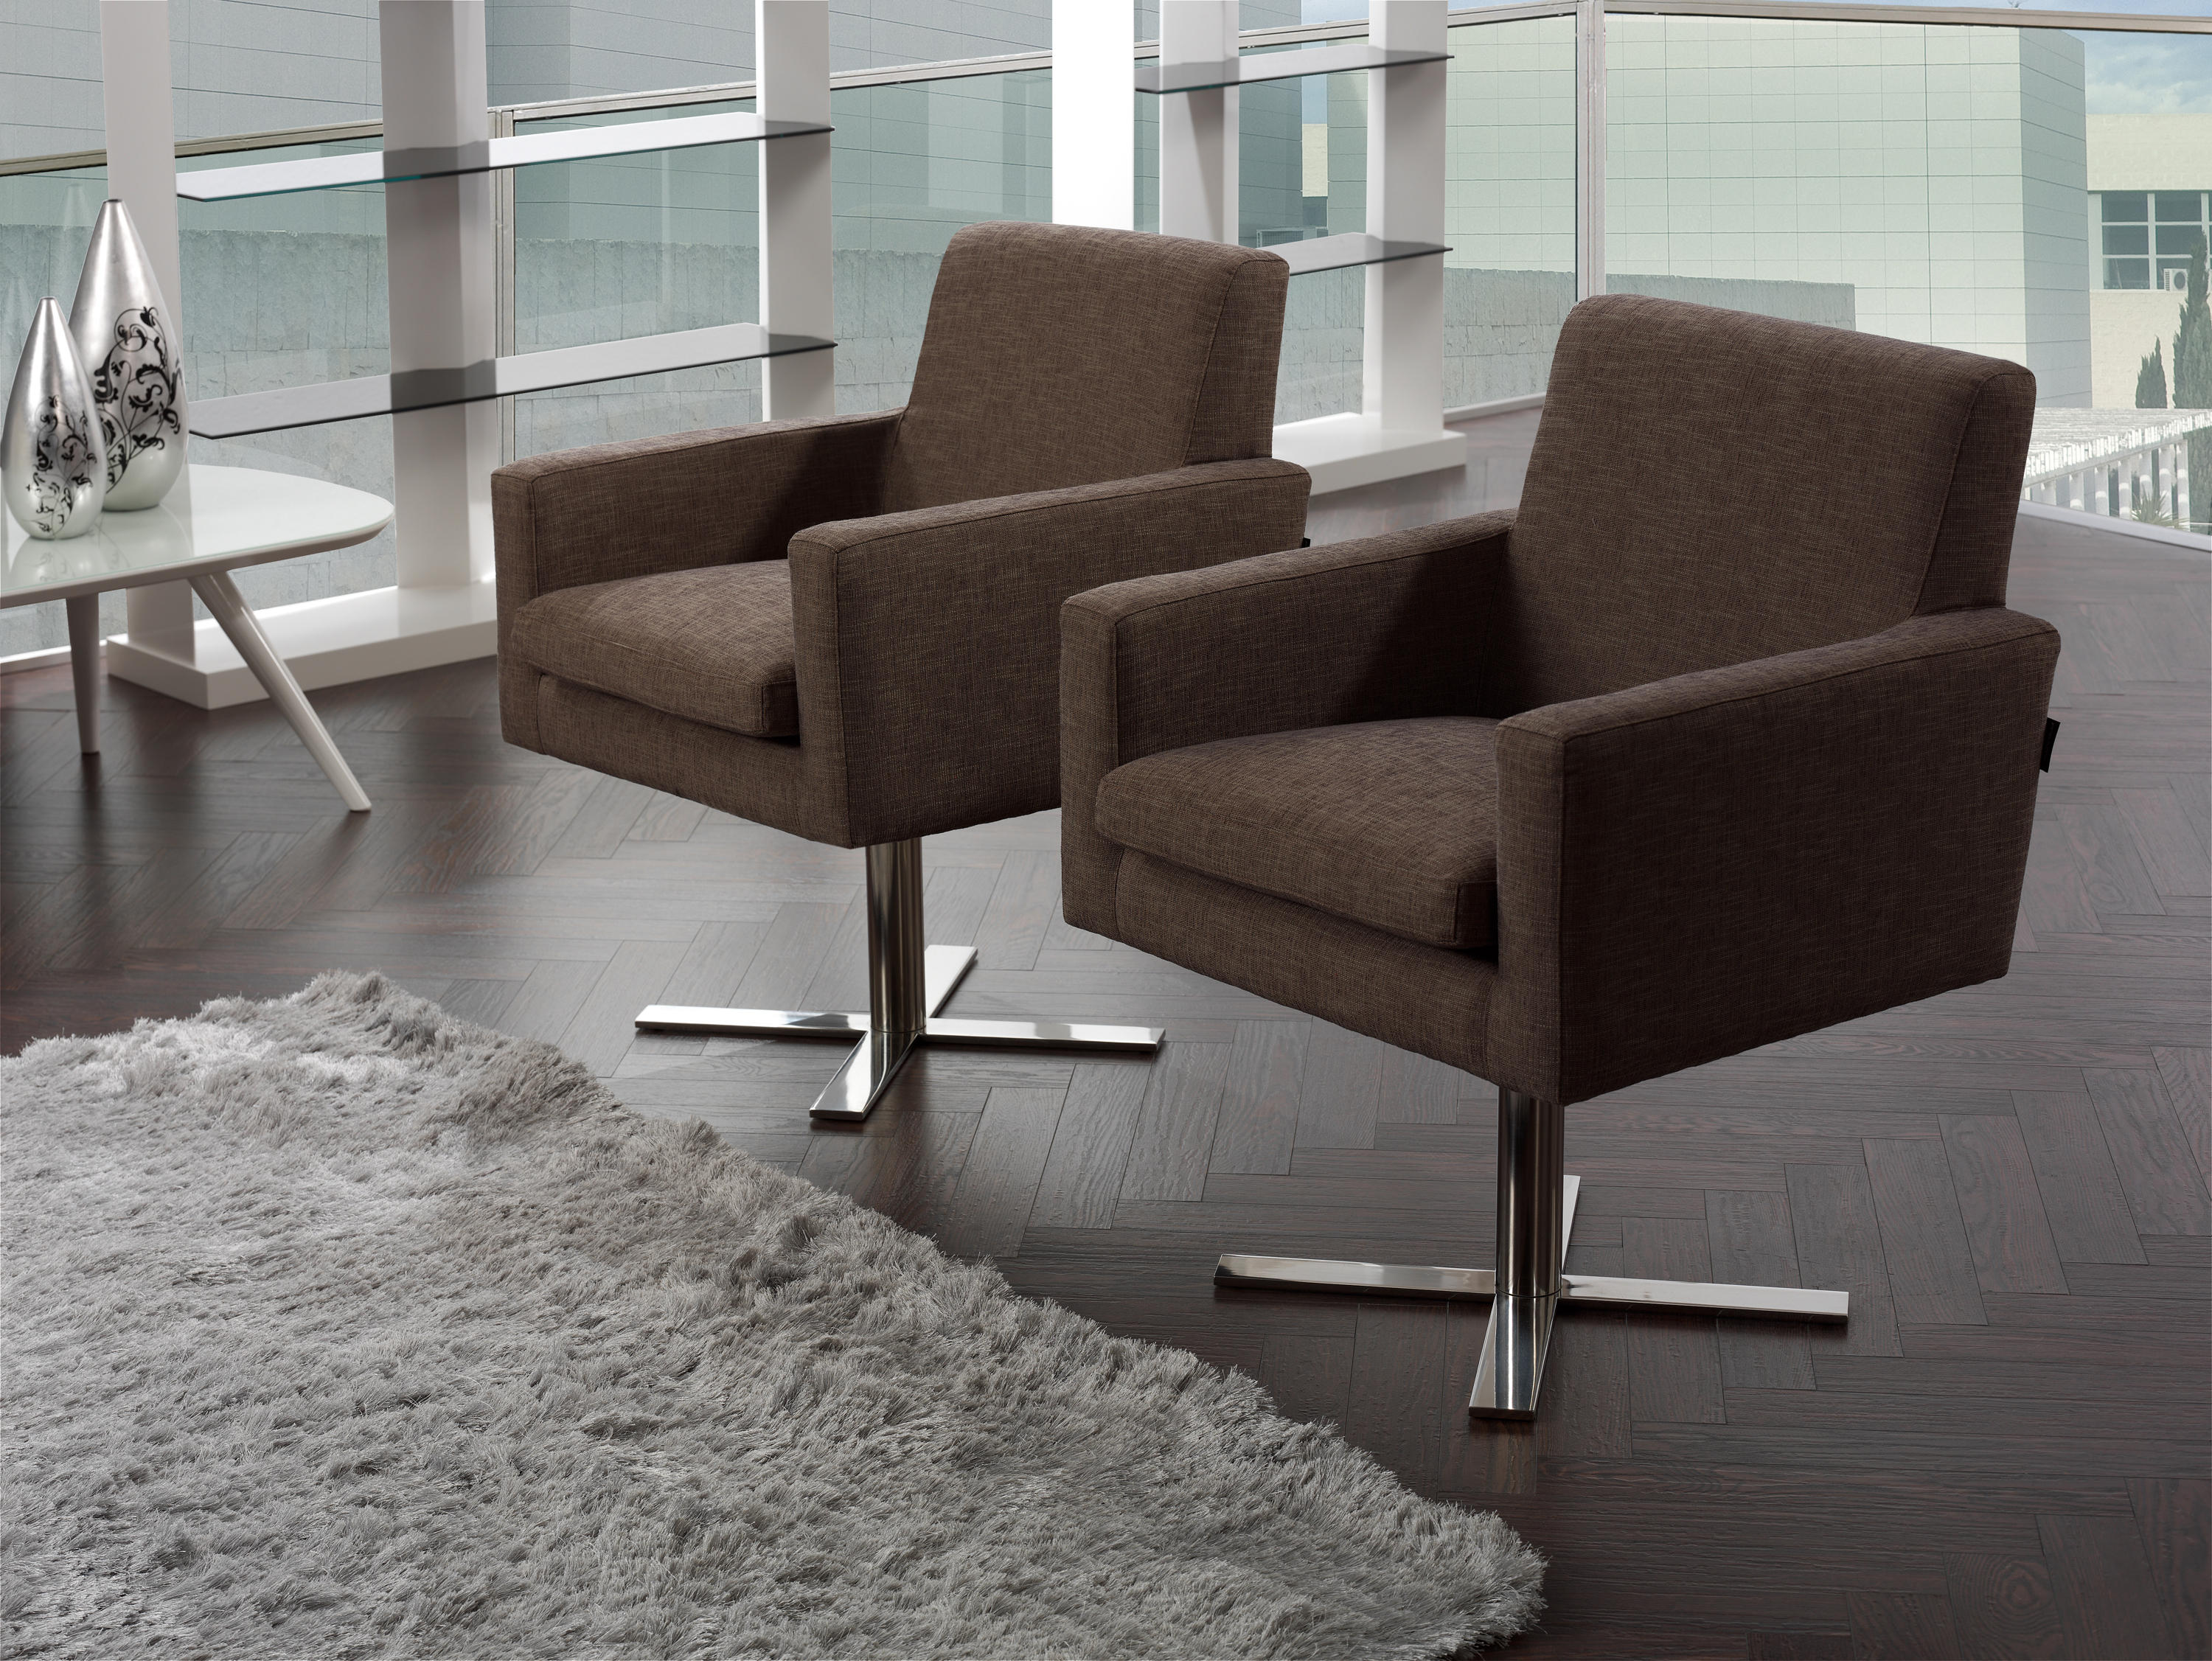 City Lounge Chairs From Belta Frajumar Architonic # Muebles City Club